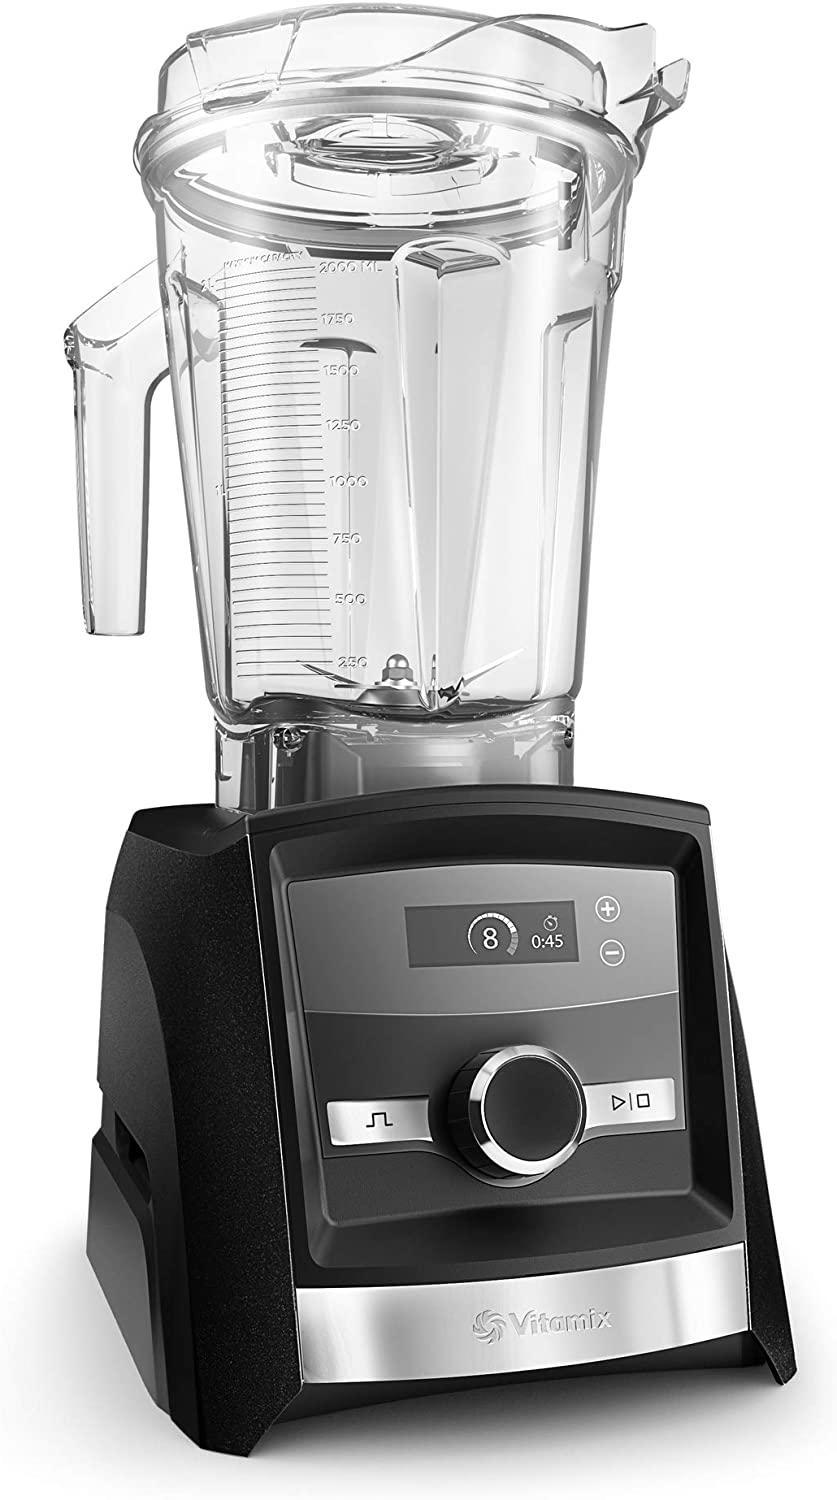 """<h2>30% Off Vitamix A3300 Ascent Series Smart Blender</h2><br>""""On a more practical note, I've been wanting a Vitamix for years and years and decided to finally pull the trigger when I saw that it was marked down 30%!""""<br><br><em>— Kate Spencer, Creative and Updates Editor</em><br><br><strong>Vitamix</strong> A3300 Ascent Series Smart Blender, $, available at <a href=""""https://www.amazon.com/Vitamix-Blender-Professional-Grade-Low-Profile-Container/dp/B01N11XJQ6"""" rel=""""nofollow noopener"""" target=""""_blank"""" data-ylk=""""slk:Amazon"""" class=""""link rapid-noclick-resp"""">Amazon</a>"""